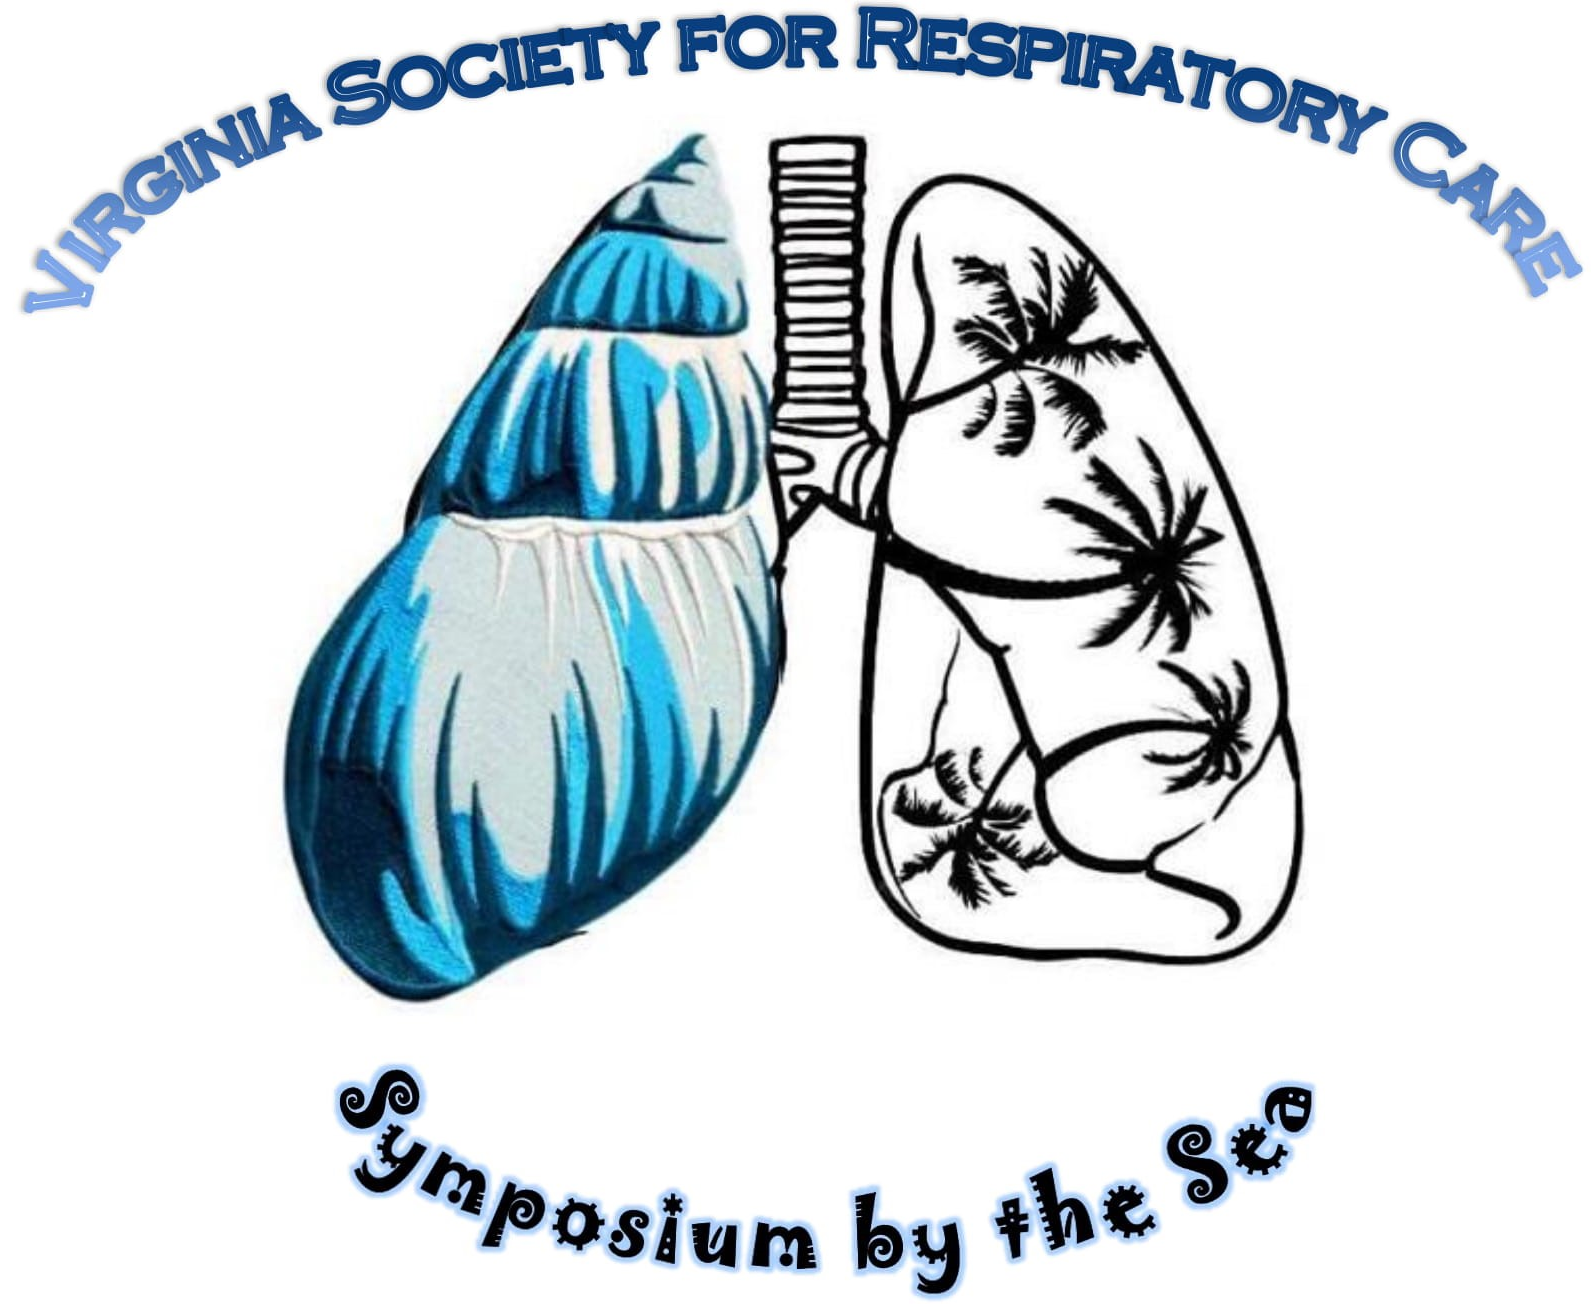 Registration: Symposium by the Sea 2021!